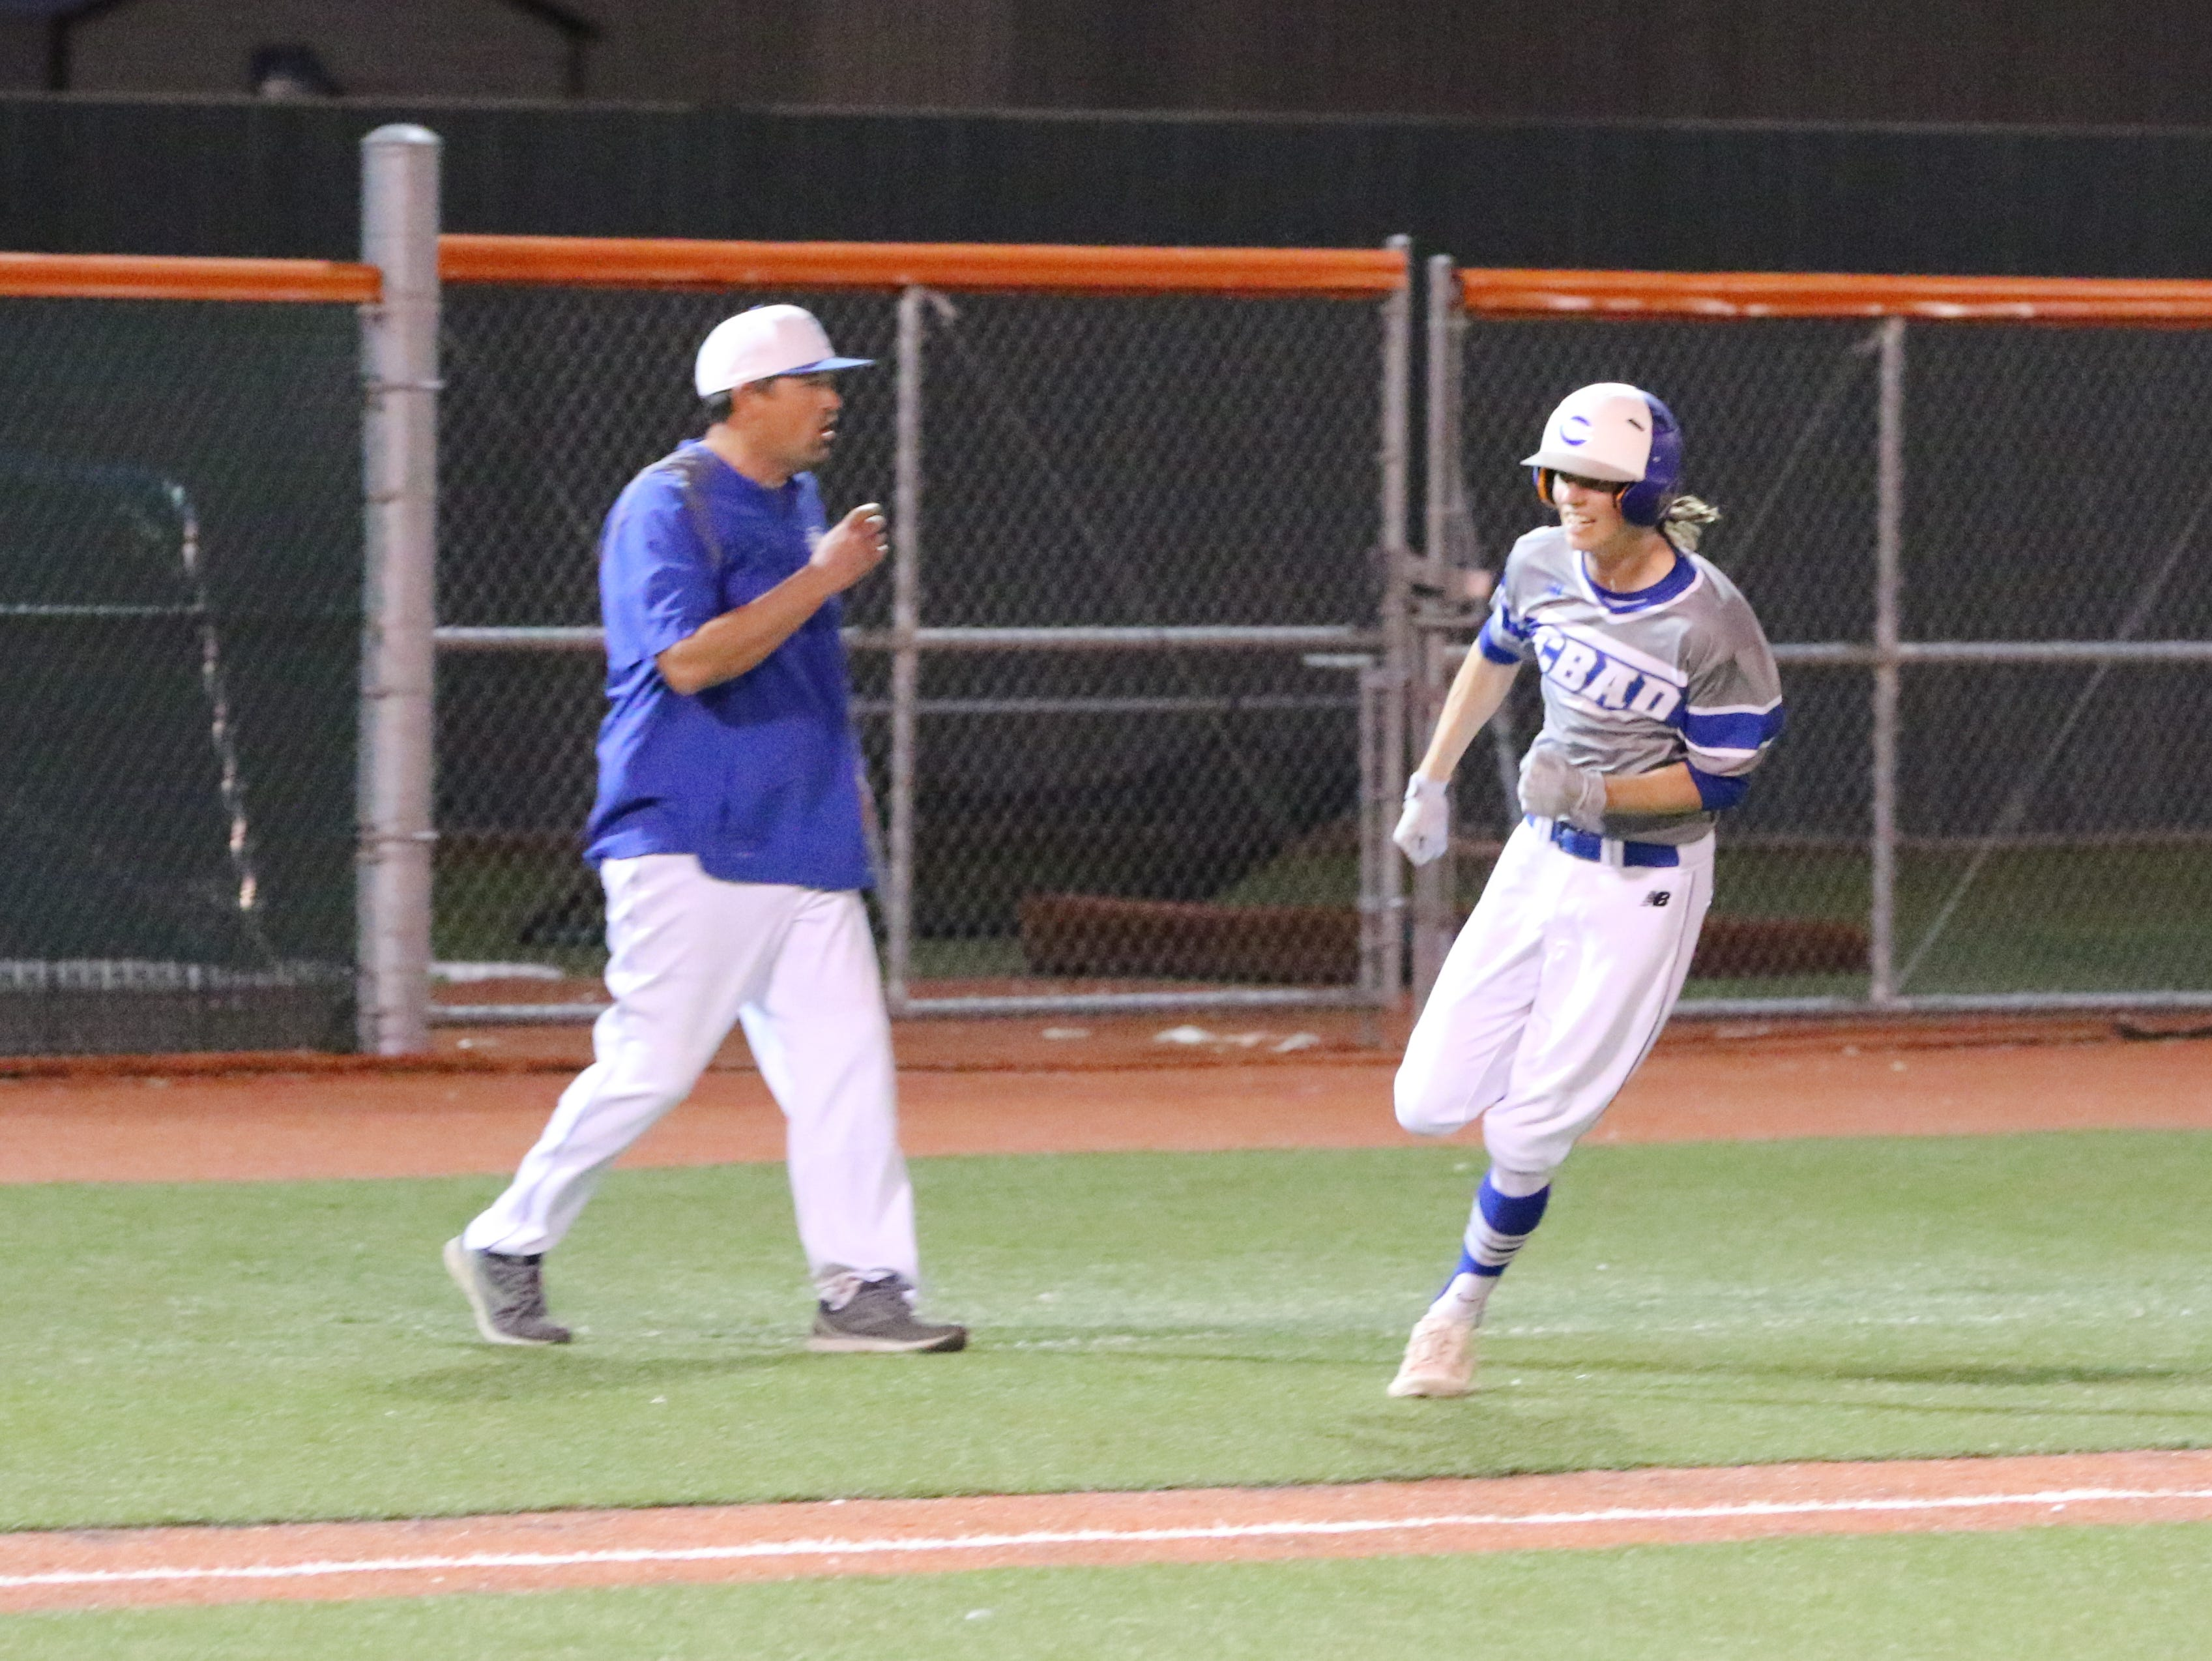 Highlights of the April 9, 2019 game between Carlsbad and Artesia.